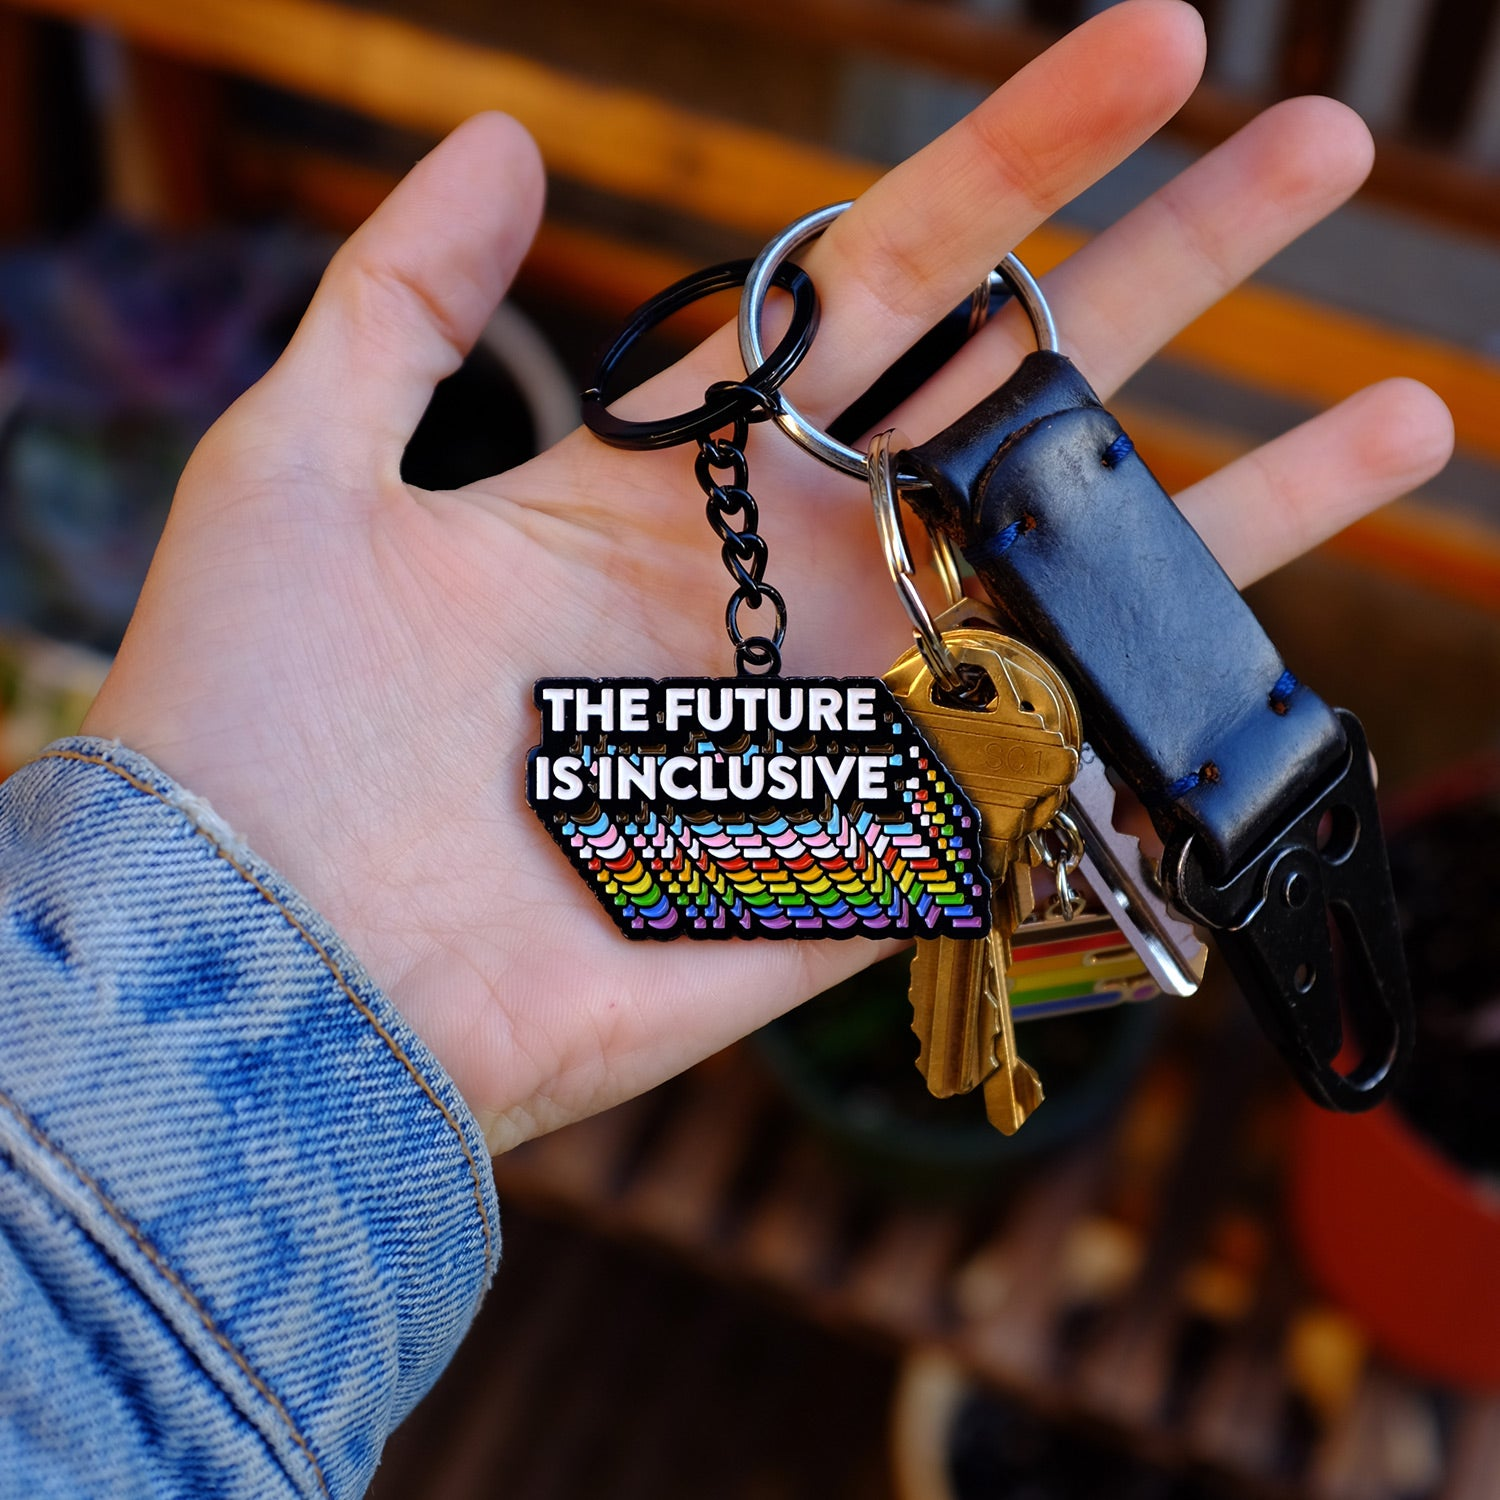 The Future Is Inclusive Keychain